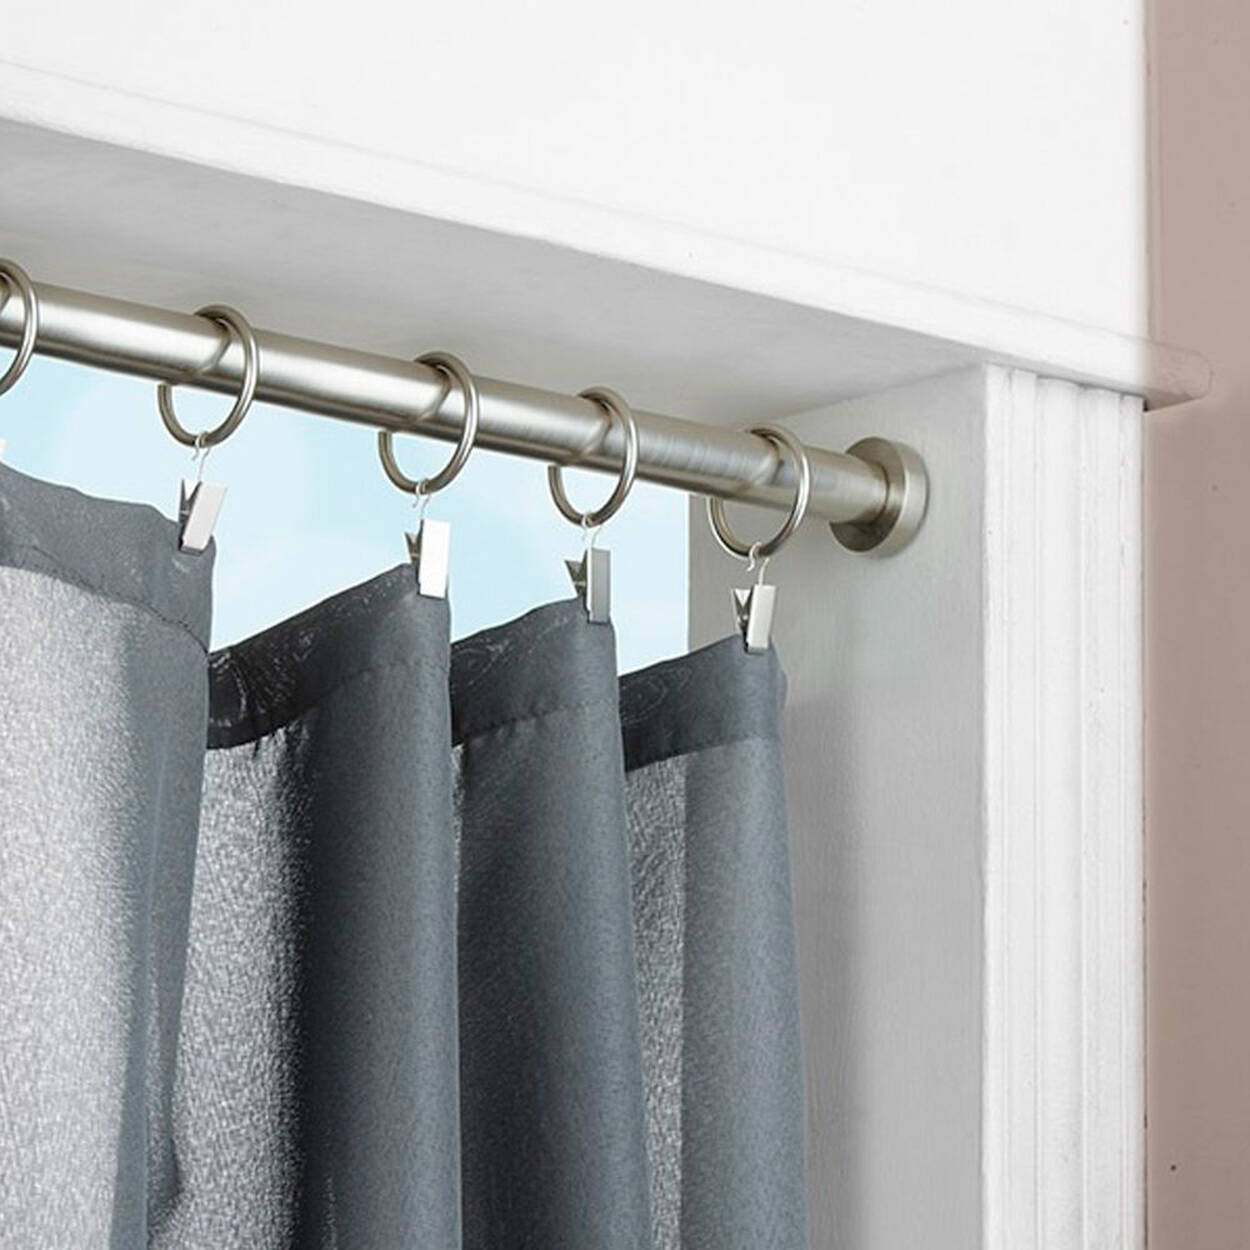 images get my hang tops a creation s tank best marcimoon pinterest can goodness hooks rod the you curtains off i shaped it and closet curtain simply in on tension rods used or shower